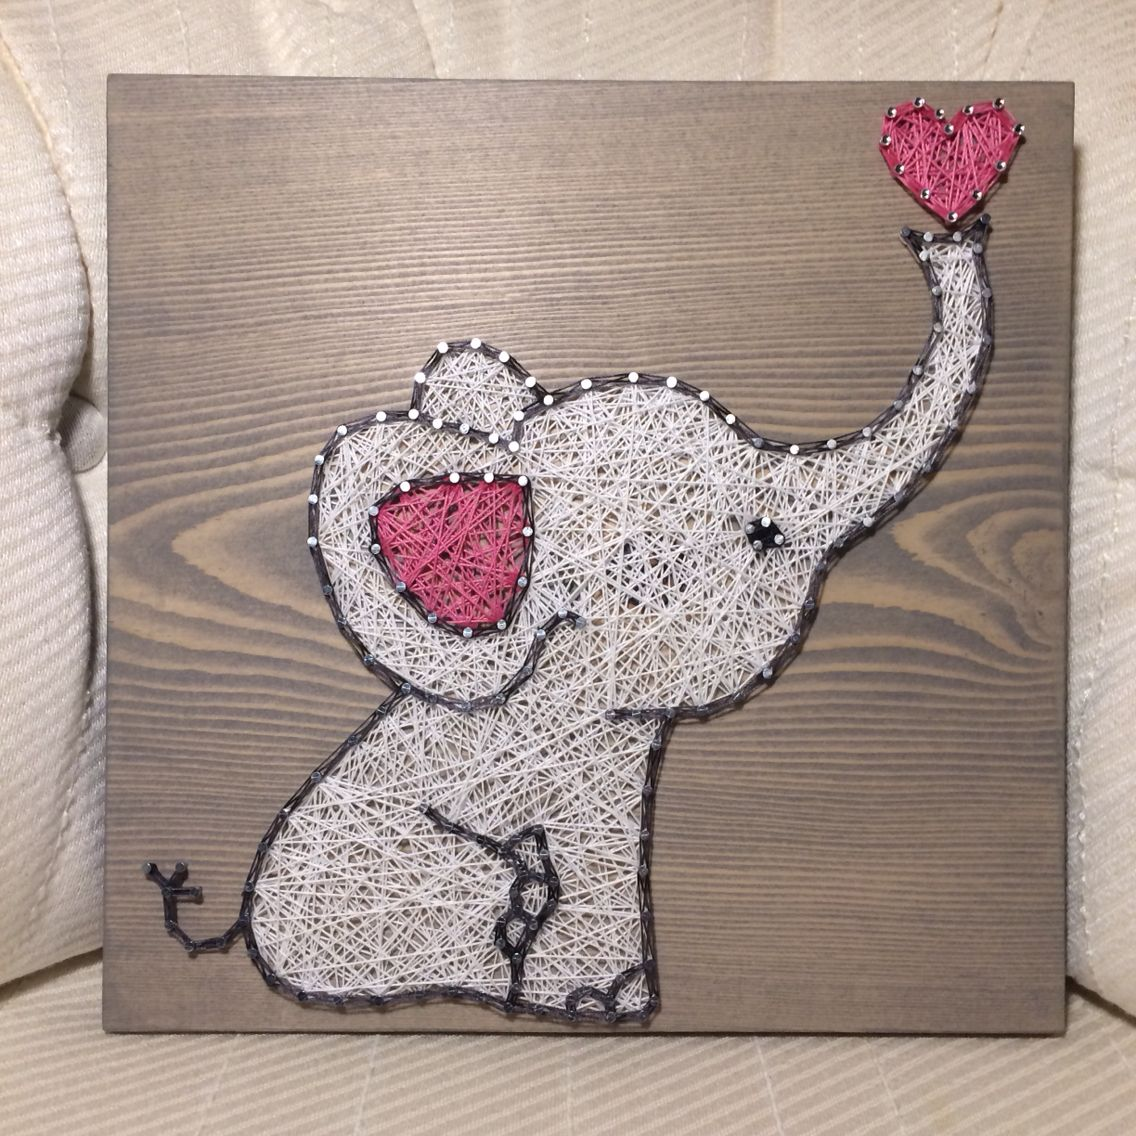 Elephant Twin Nursery Wall Art Nursery Room Decor For Twins: Baby Elephant String Art Sign, Nursery Decor, Baby Shower